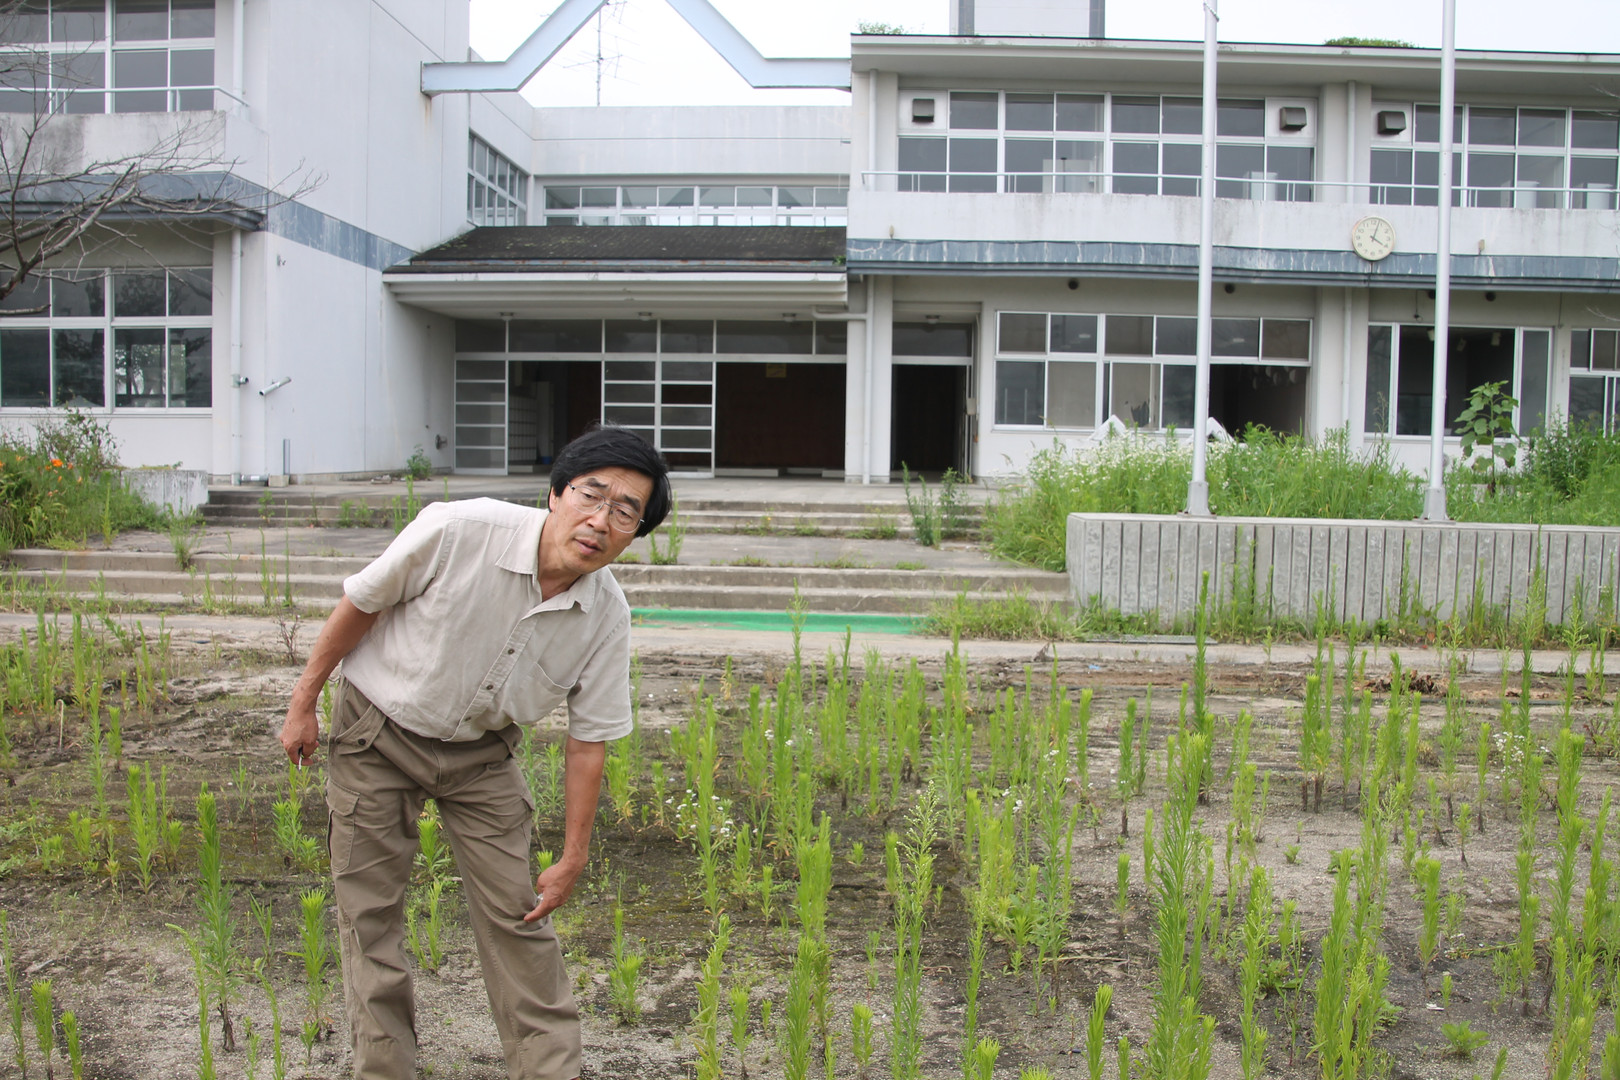 Farmer Otomo showing how high the water